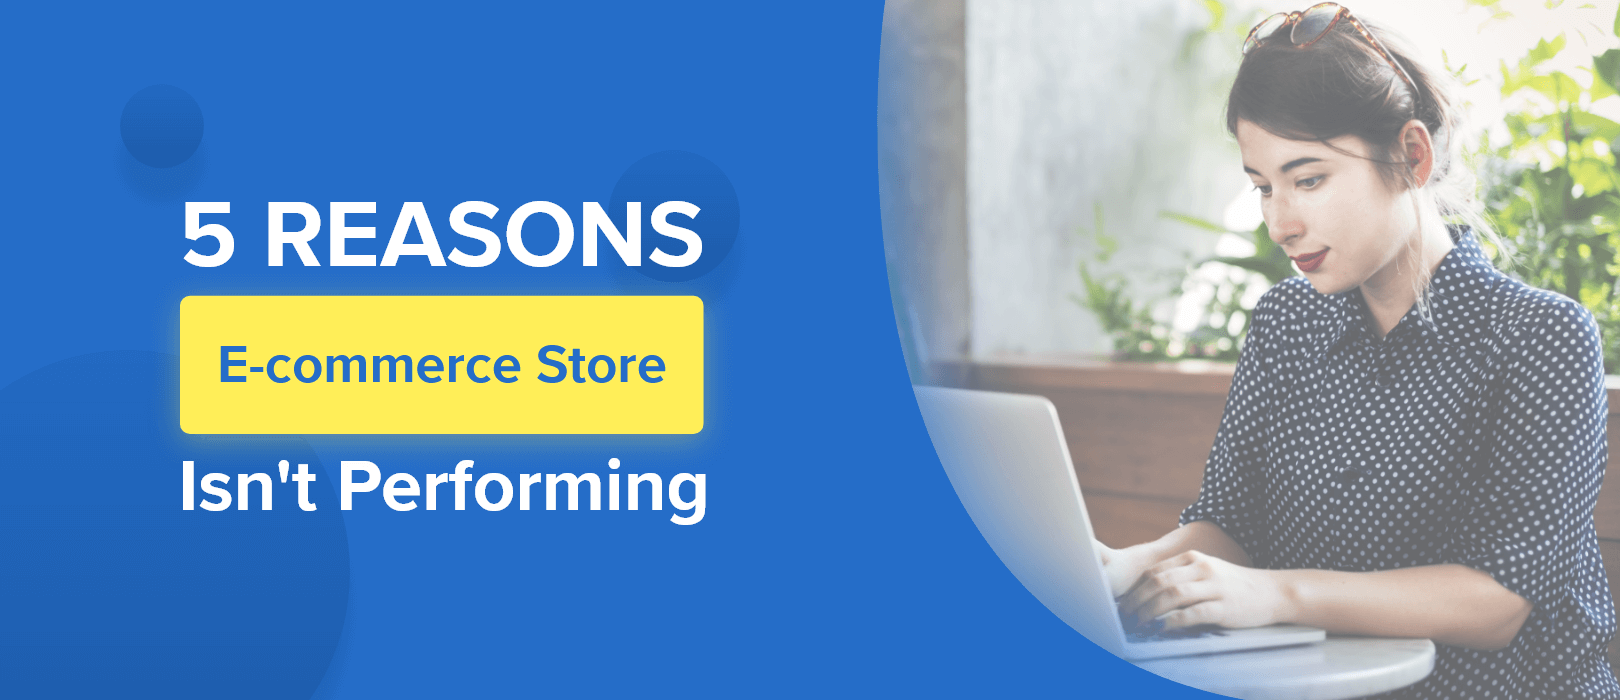 5 Reasons E-Commerce Store Isn't Performing